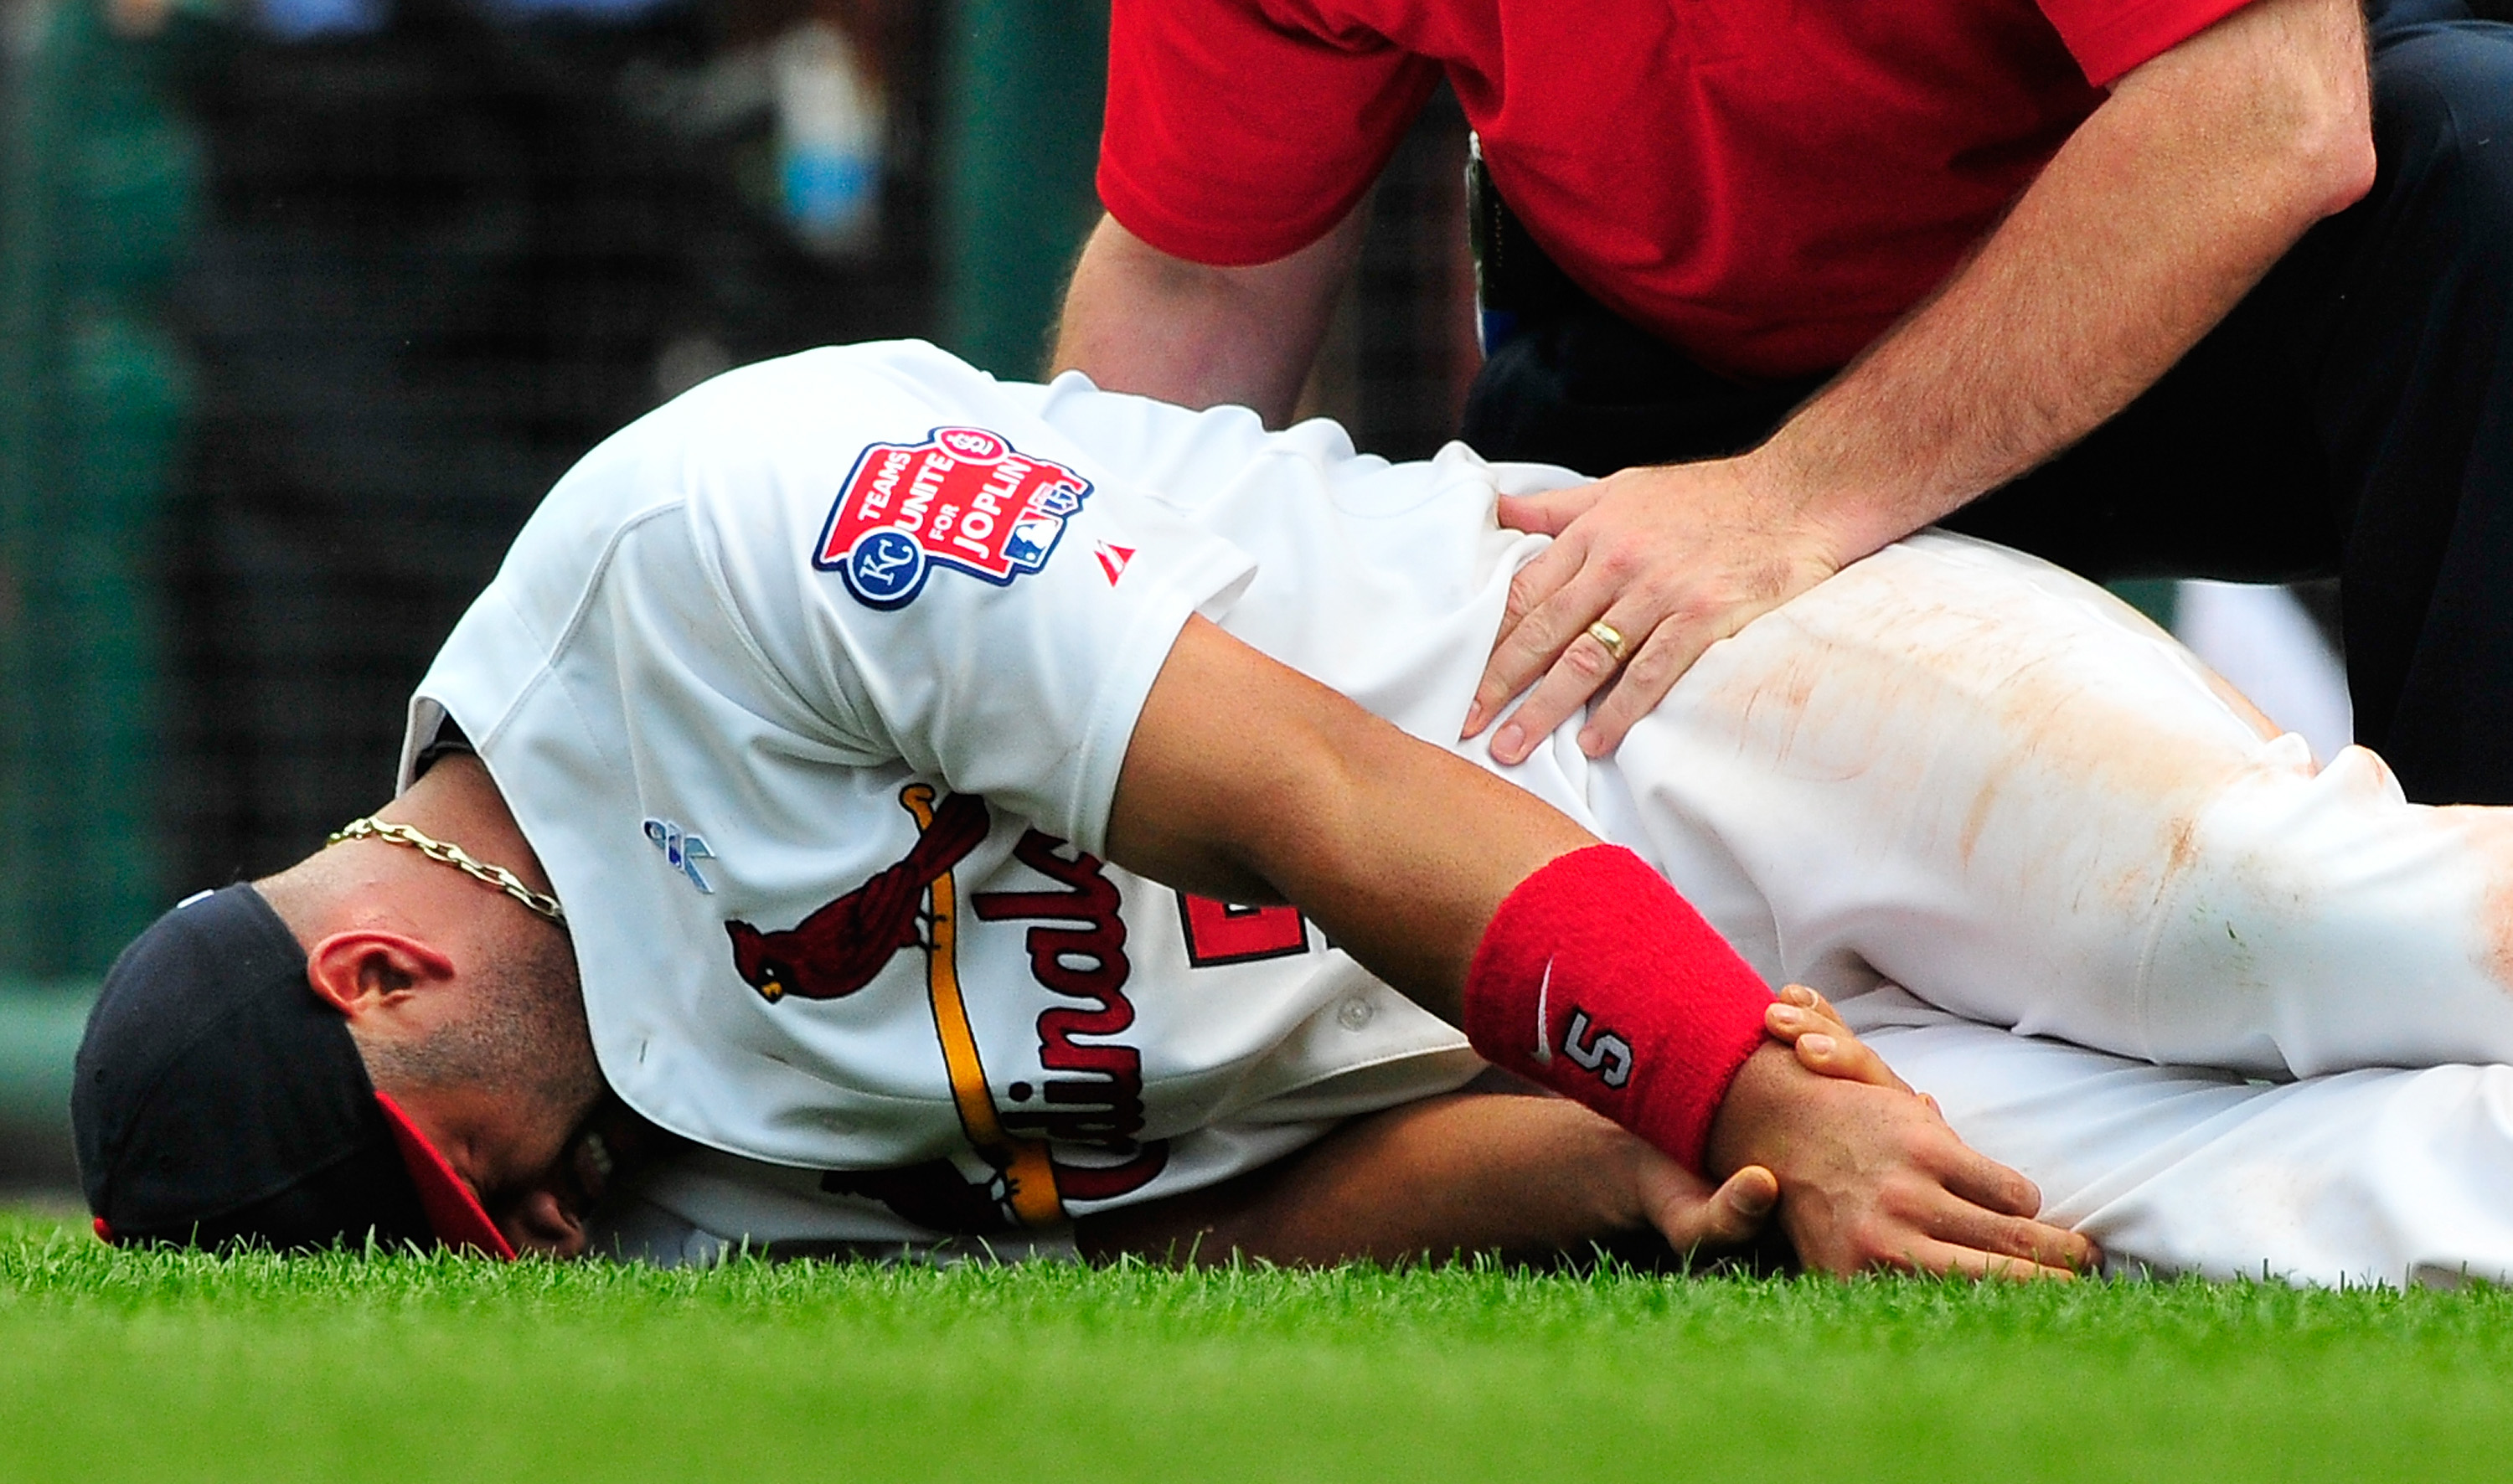 ST. LOUIS, MO - JUNE 19: Albert Pujols #5 of the St. Louis Cardinals holds his wrist after a collision with Wilson Betemit #24 of the Kansas City Royals at Busch Stadium on June 19, 2011 in St. Louis, Missouri.  (Photo by Jeff Curry/Getty Images)